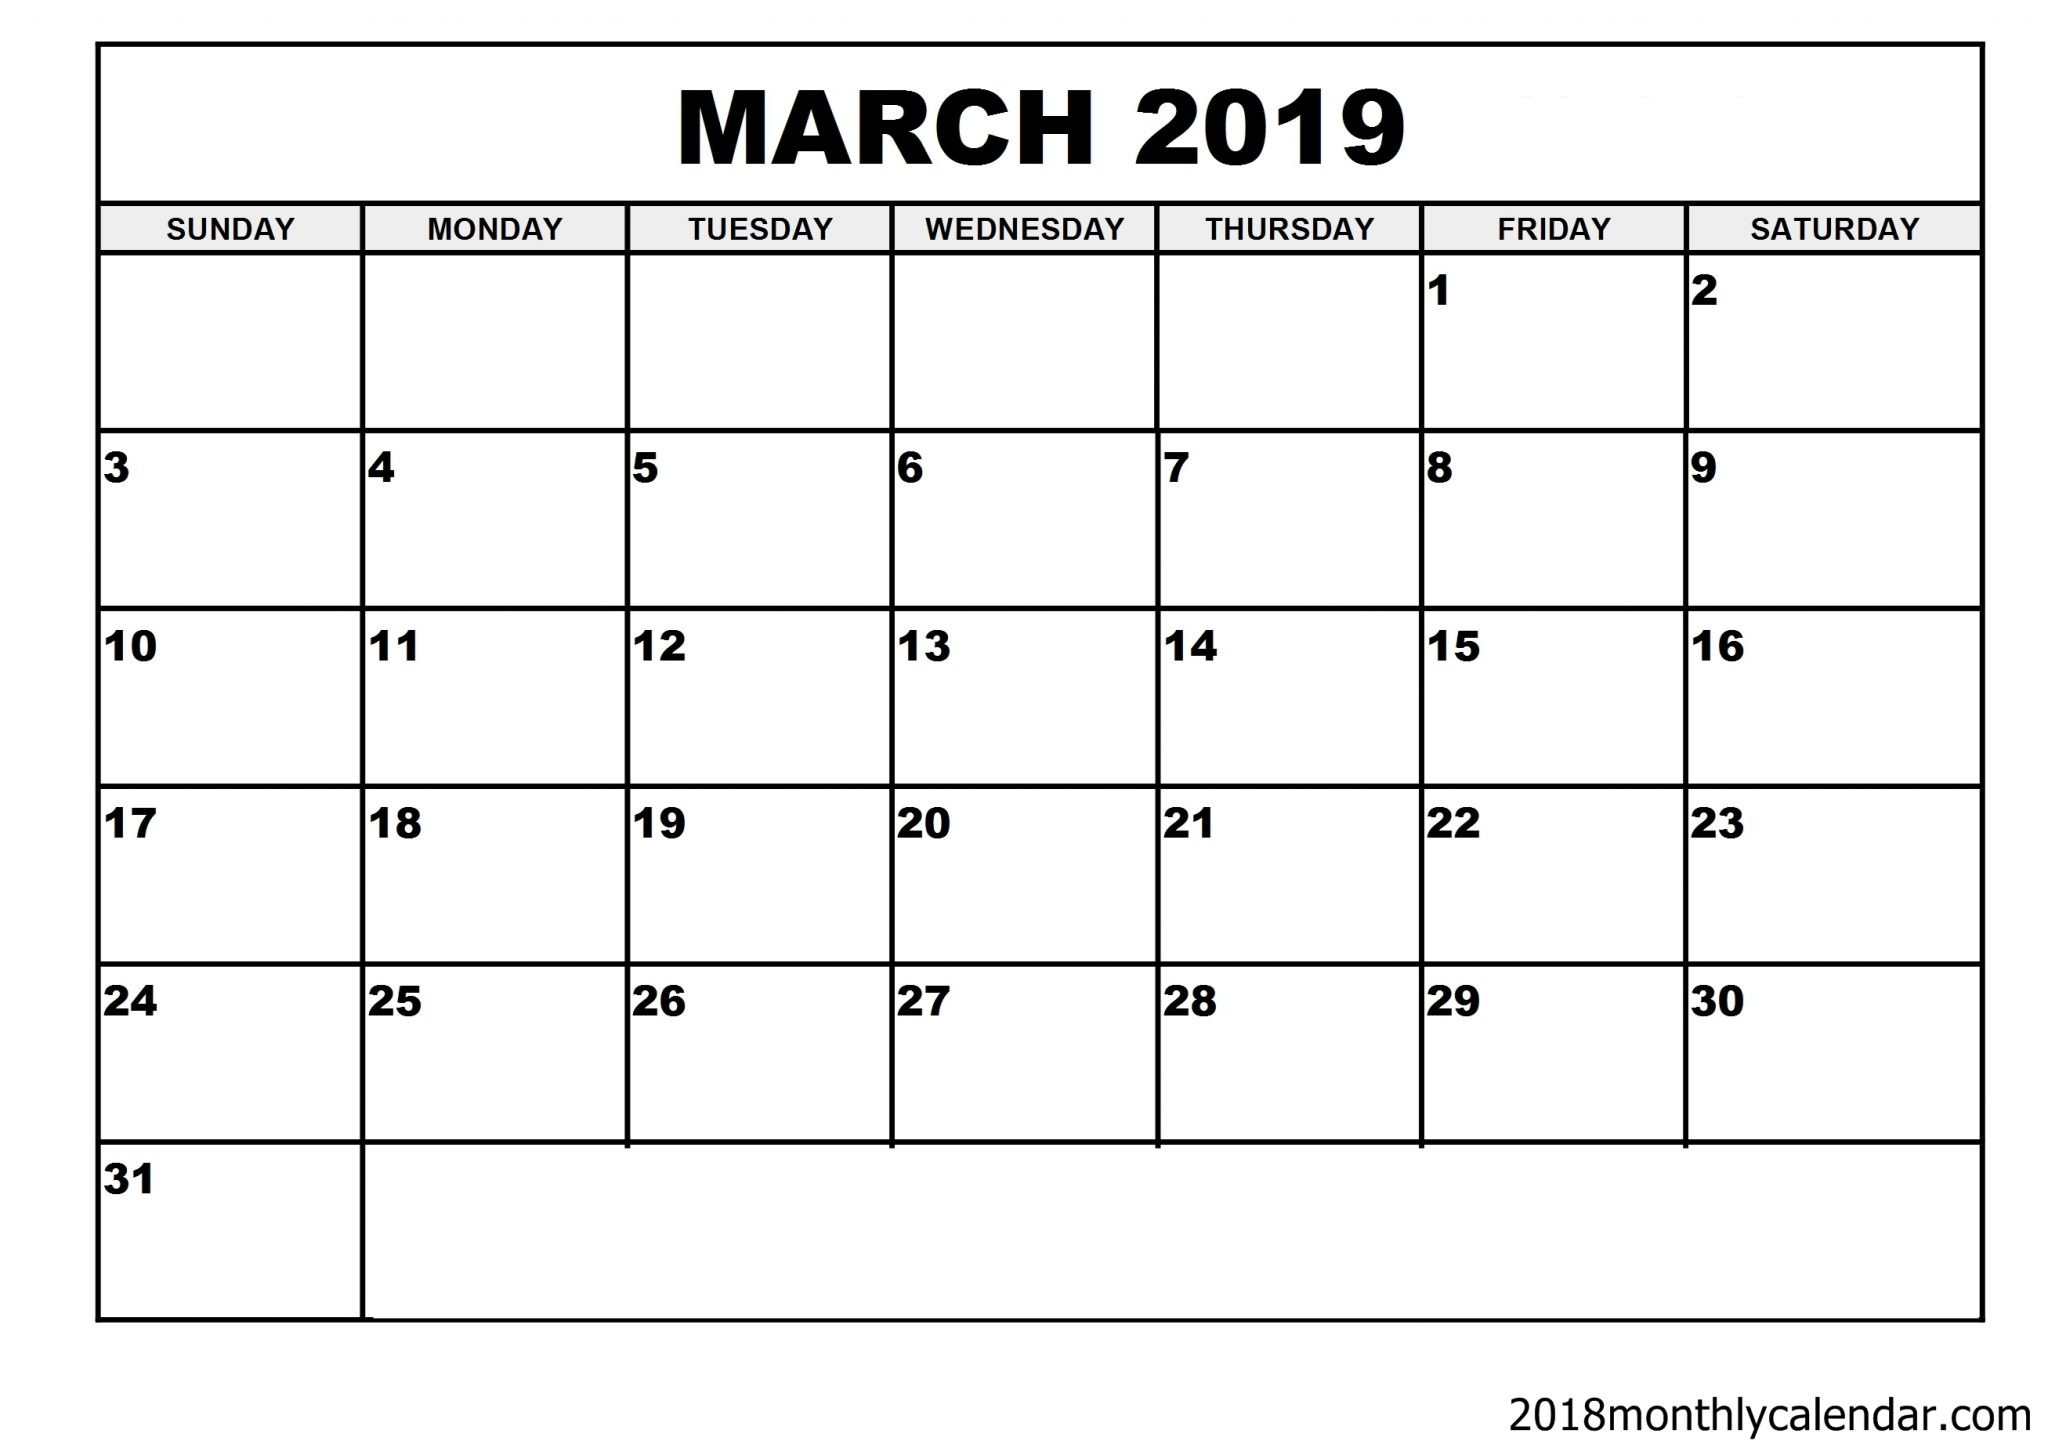 March 2019 Calendar India Más Arriba-a-fecha Fillable March 2019 Calendar Pdf Word Excel Of March 2019 Calendar India Más Recientemente Liberado Home the National Institute Of Open Schooling Nios